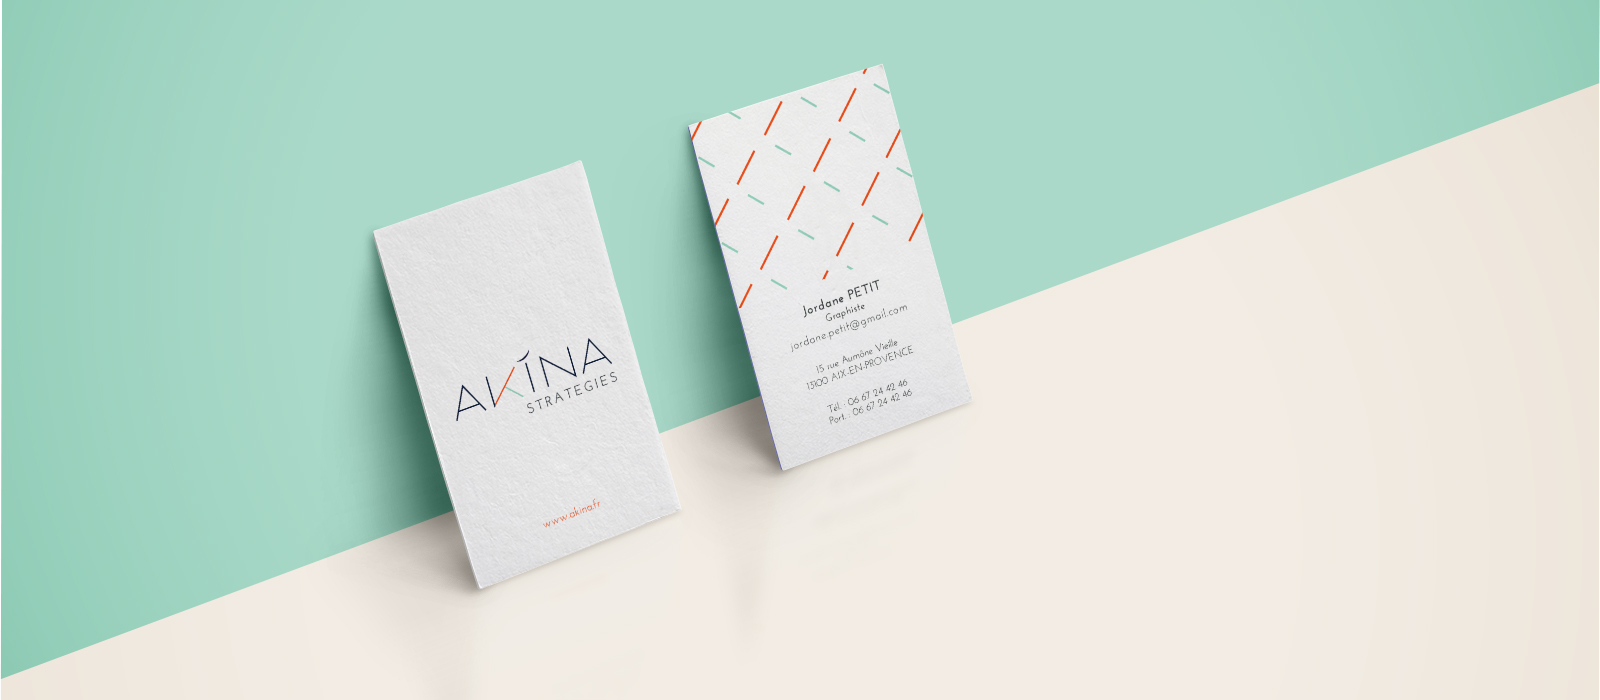 Carte de visite - AKINA STRATEGIES